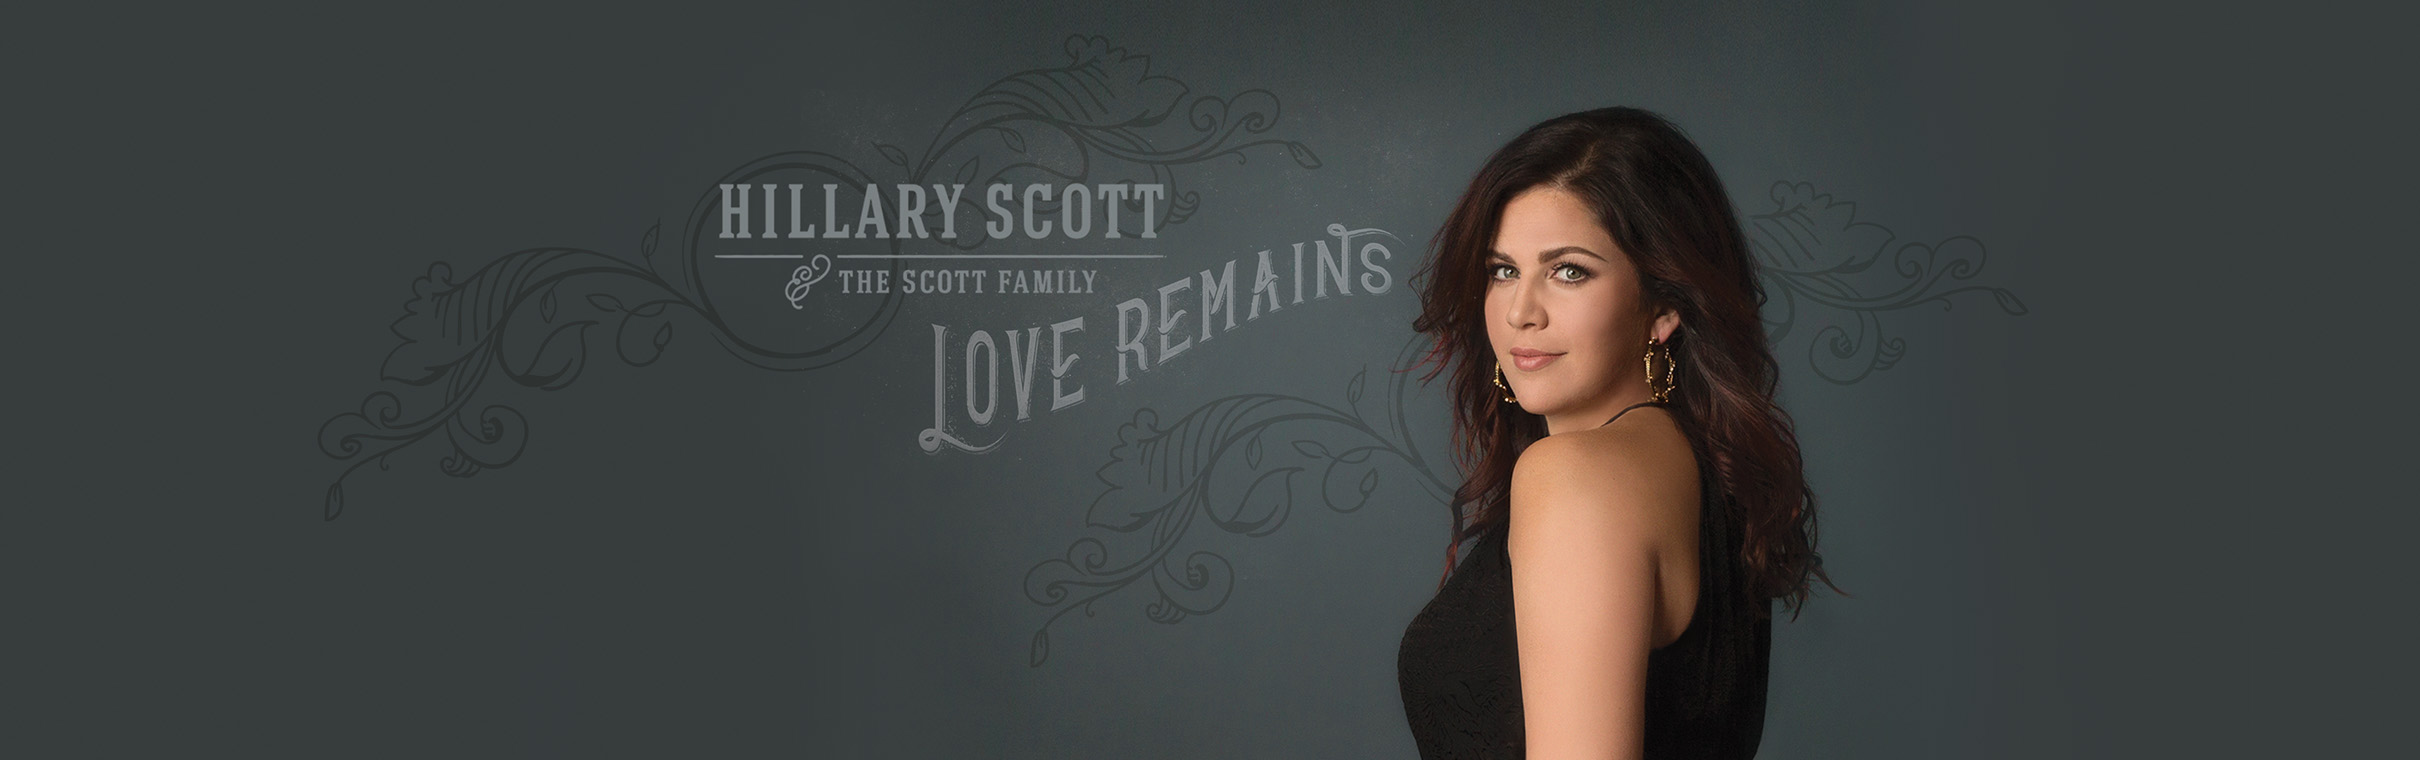 Hillary Scott and the Scott Family